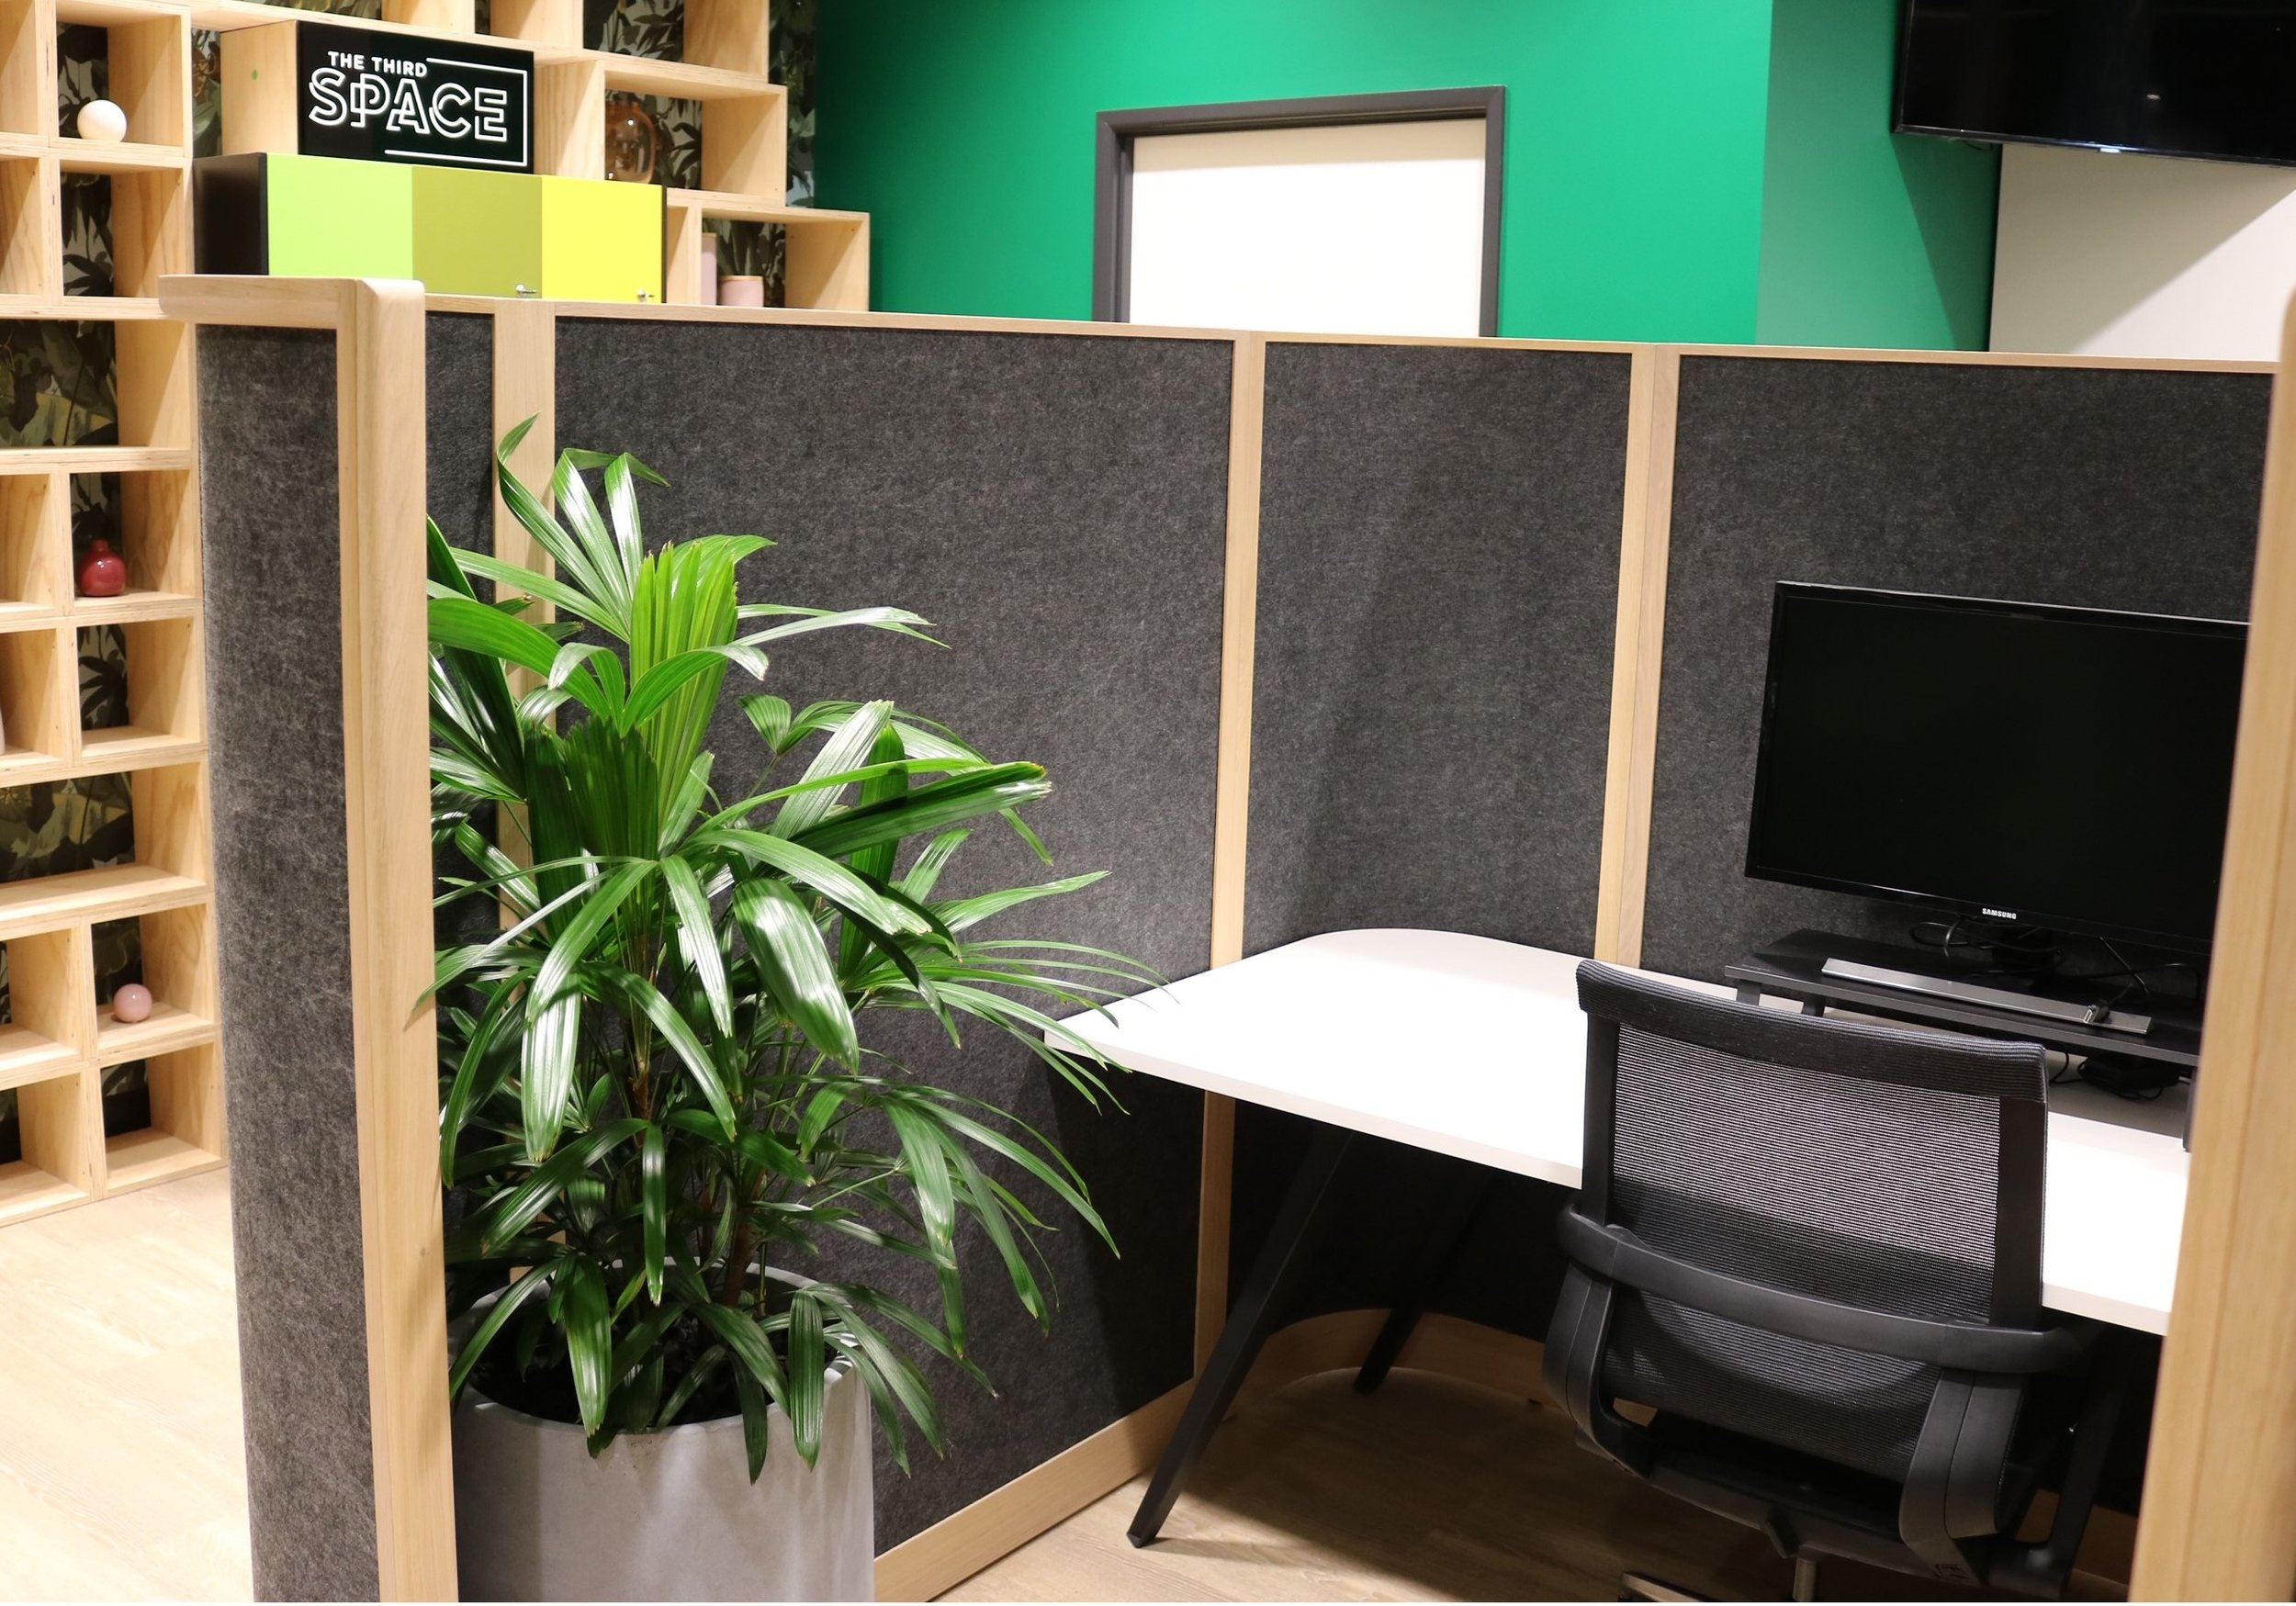 Work Cubicle: - Hourly Rate - $7.00Daily Rate - $60.00Minimum Booking - 1 HourMembers - Unlimited